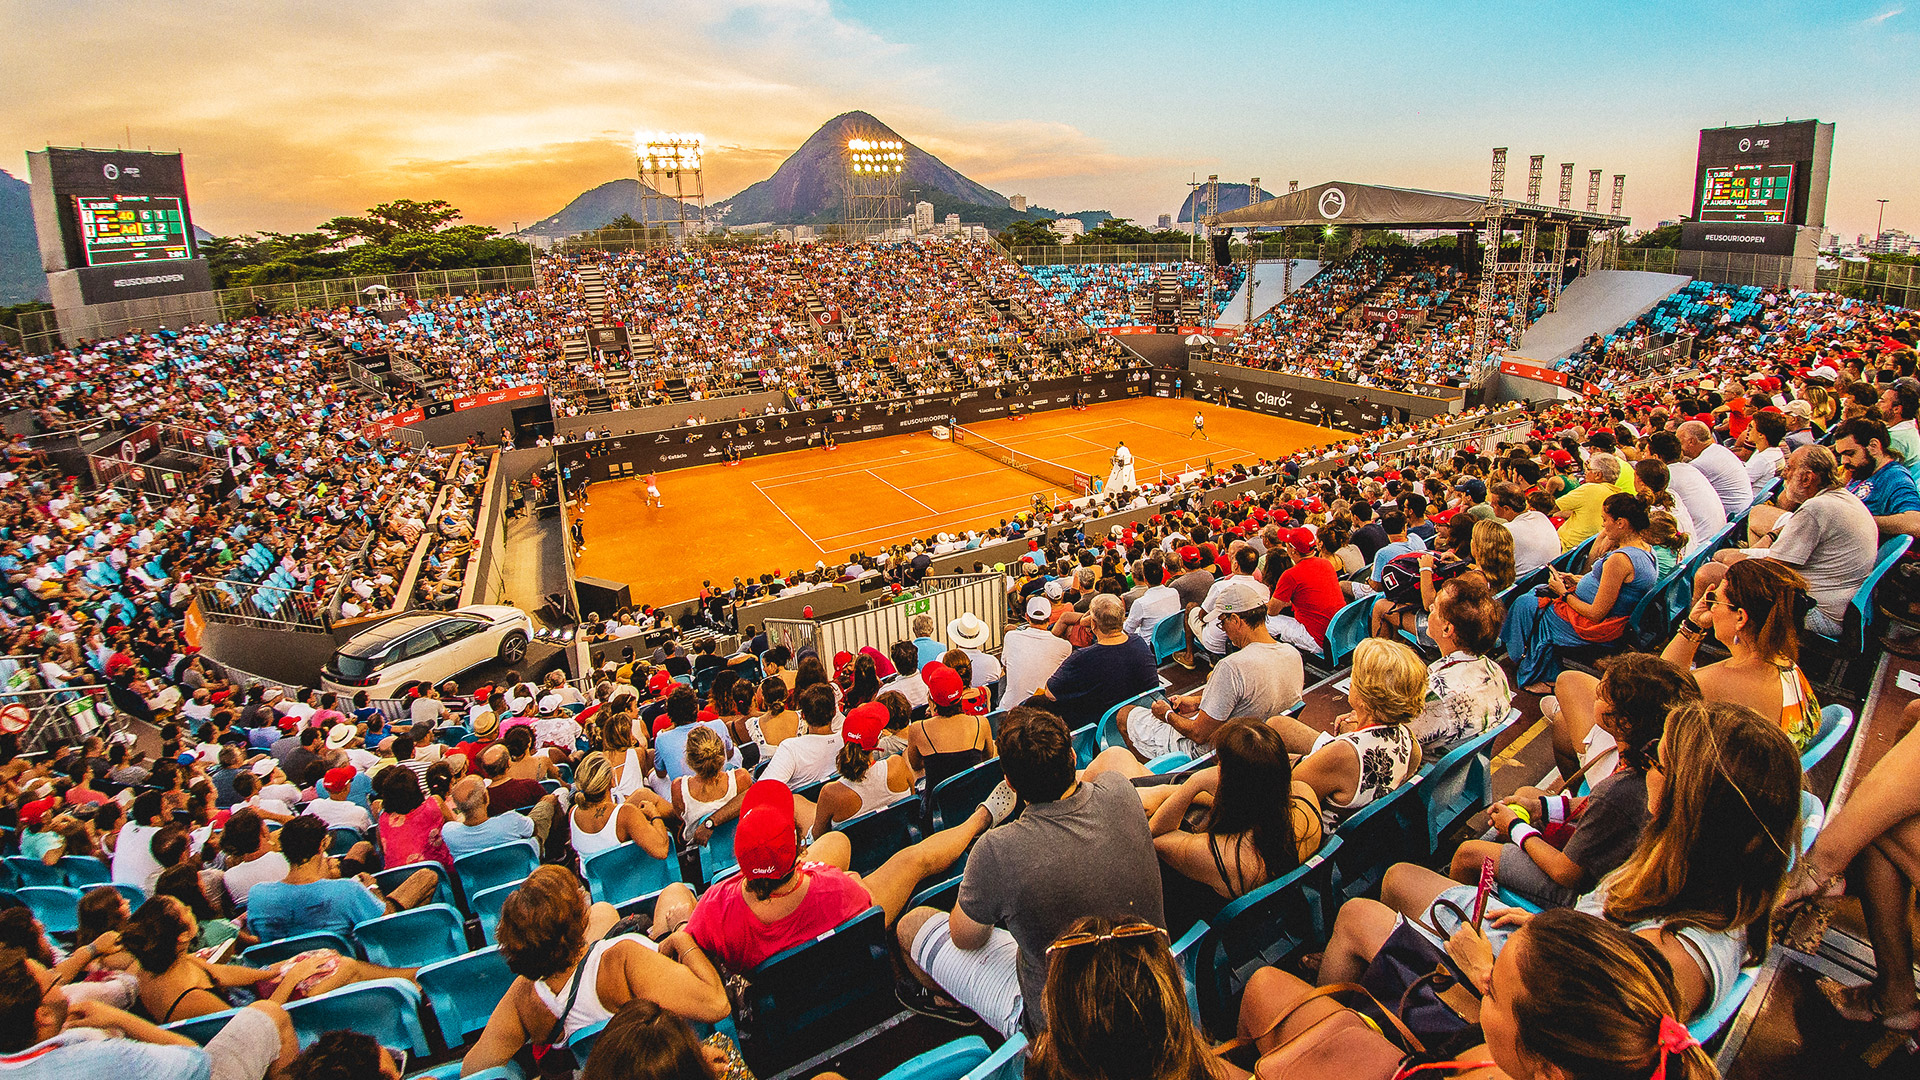 2020 Rio Open Presented by Claro - 18 February Main Coverage and Highlights